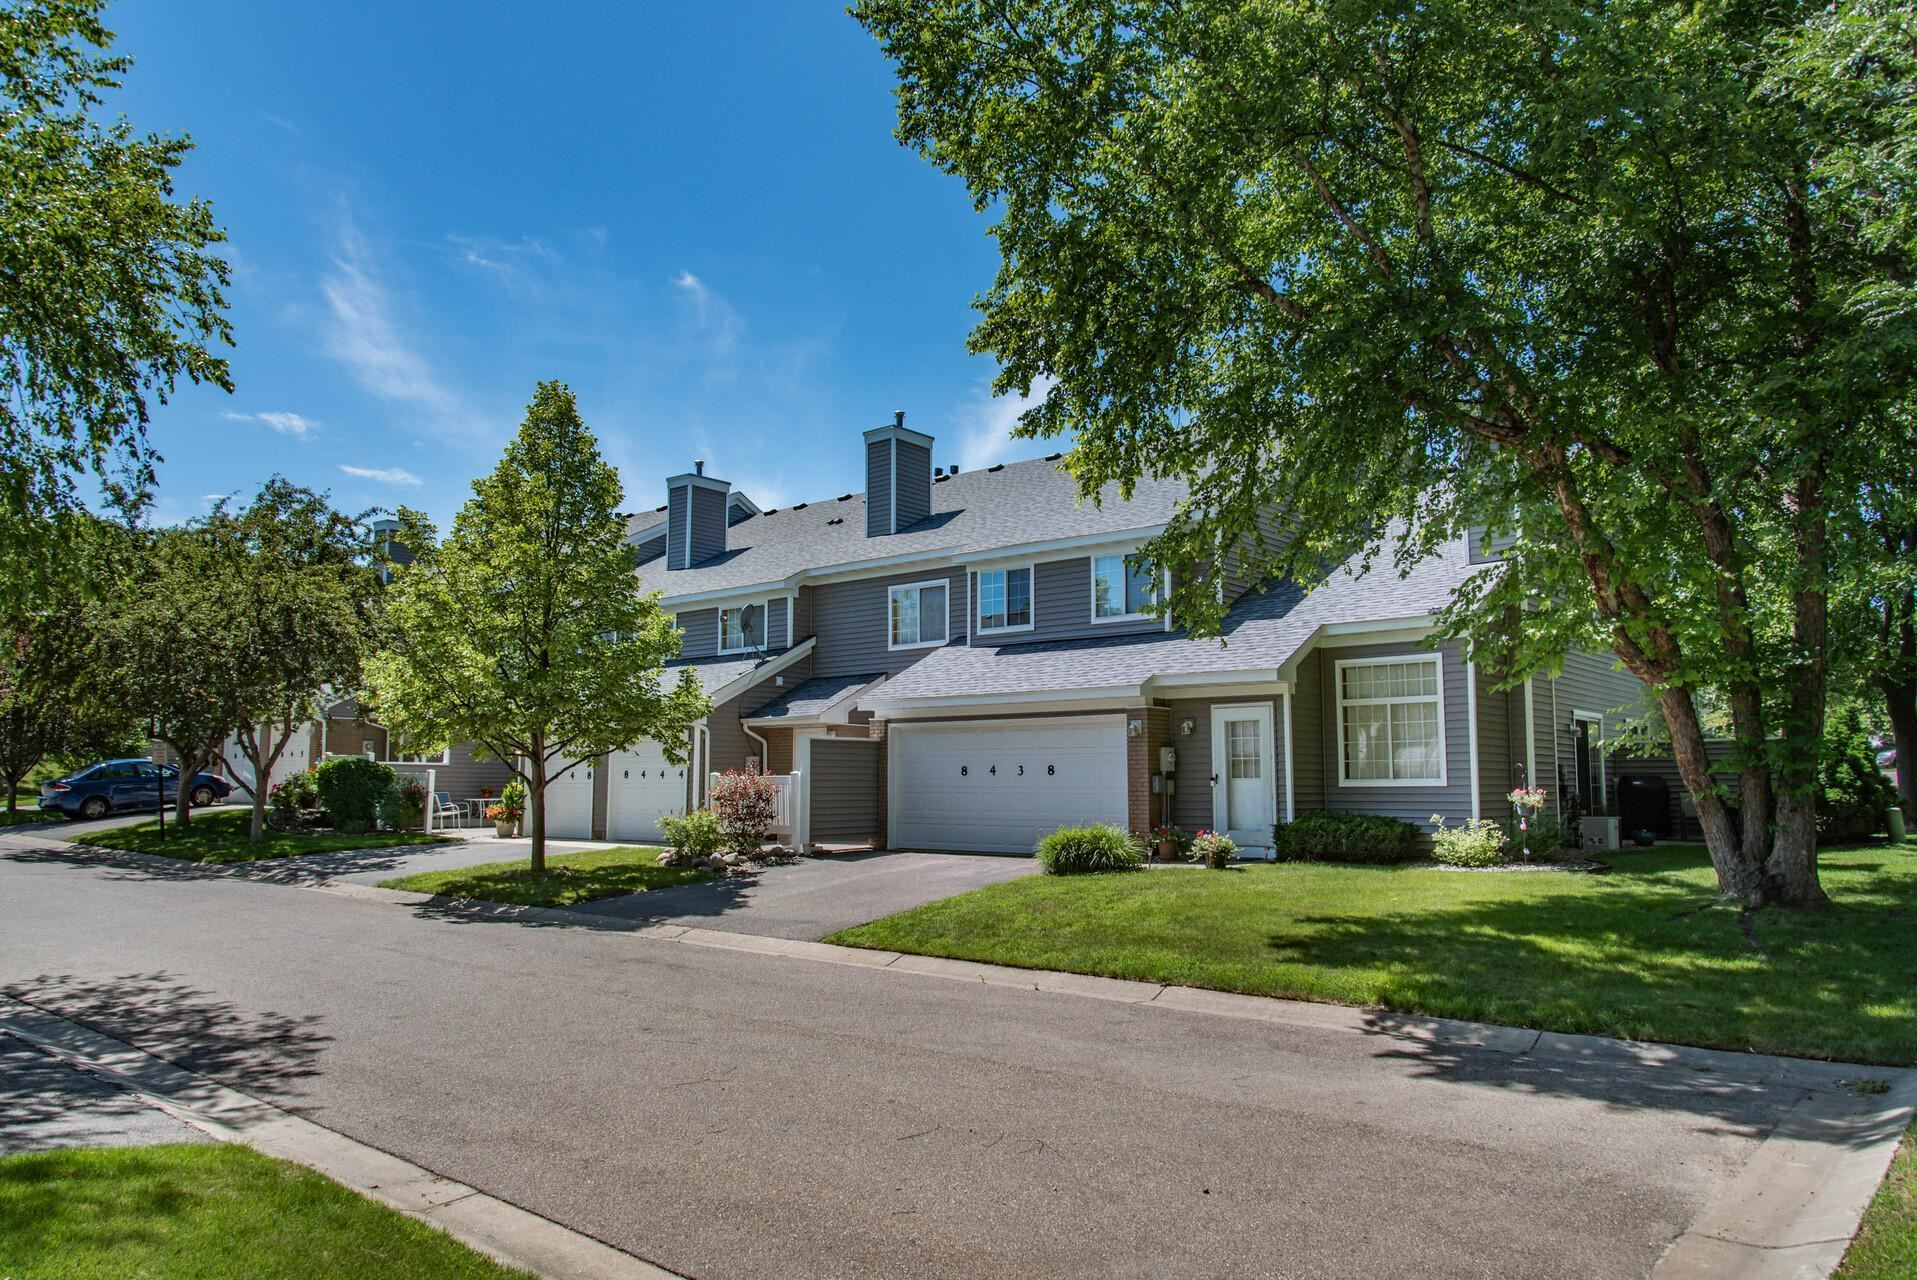 8454 Copperfield Way #75, Inver Grove Heights, MN 55076 - MLS#: 5580436